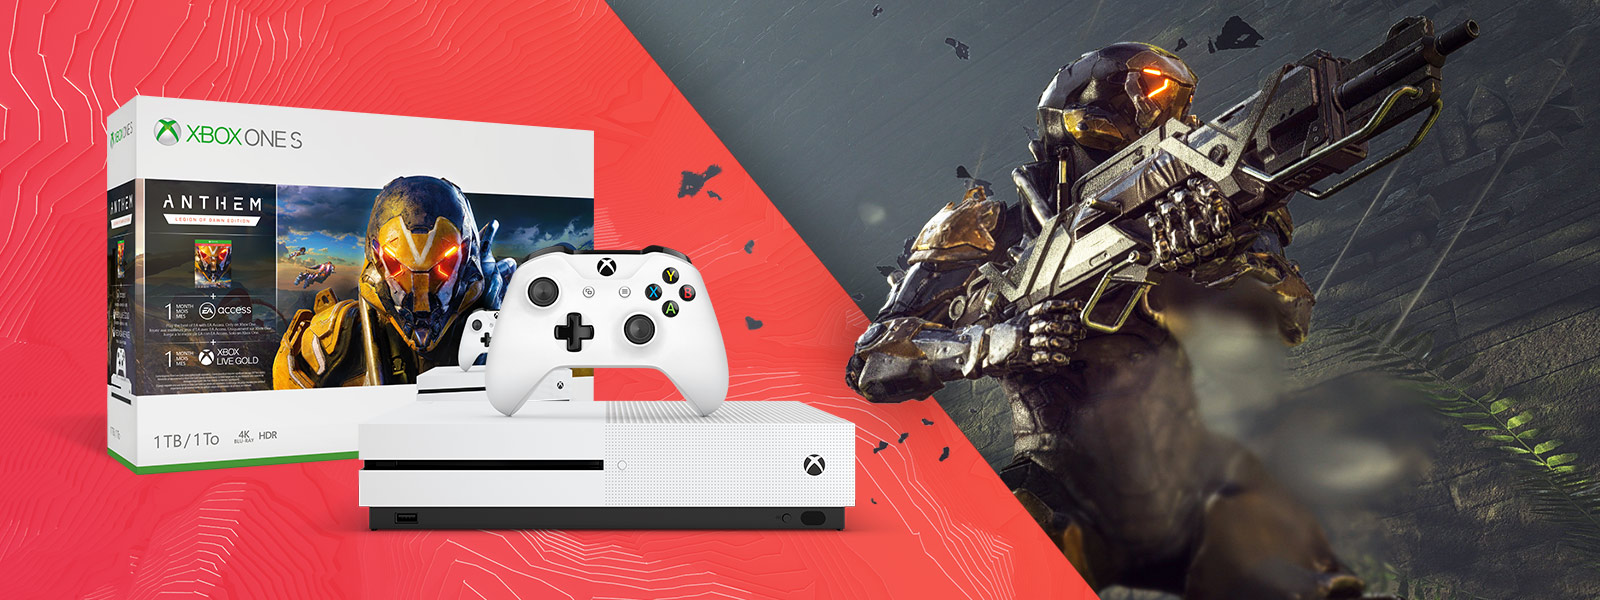 Box and console shot of Xbox One S Anthem Bundle (1TB), Ranger Javelin shoots in the background